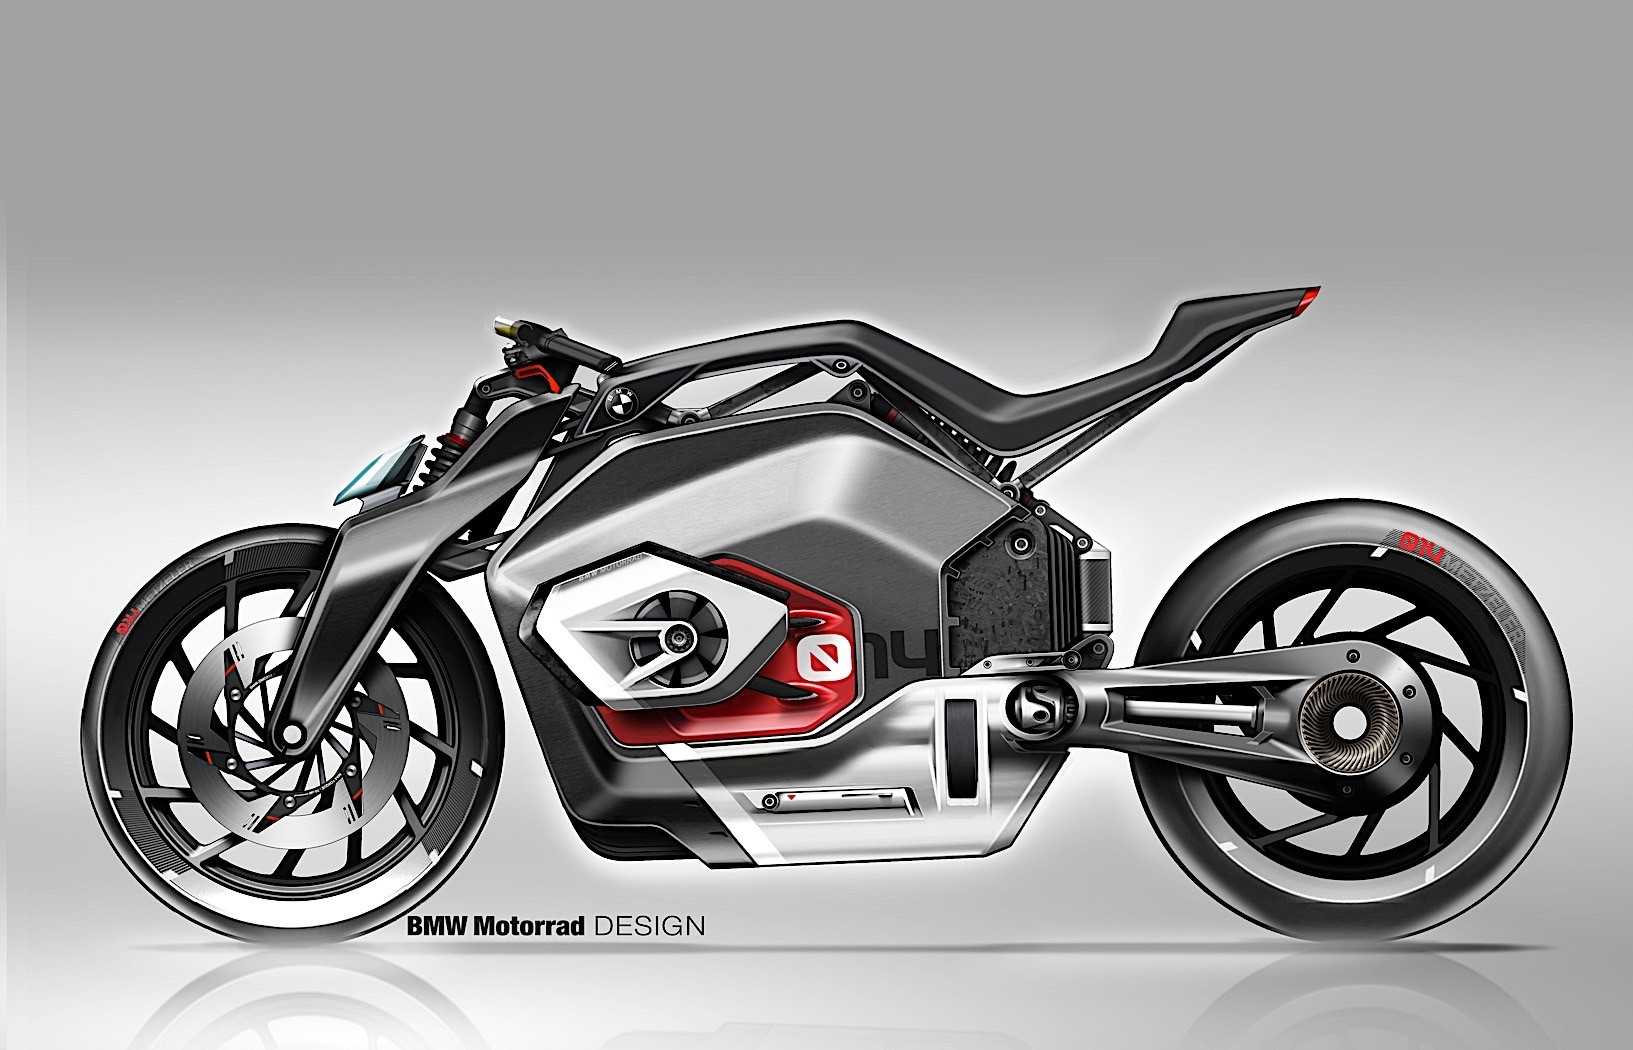 bmw-motorrad-goes-electric-with-naked-vision-dc-roadster-12